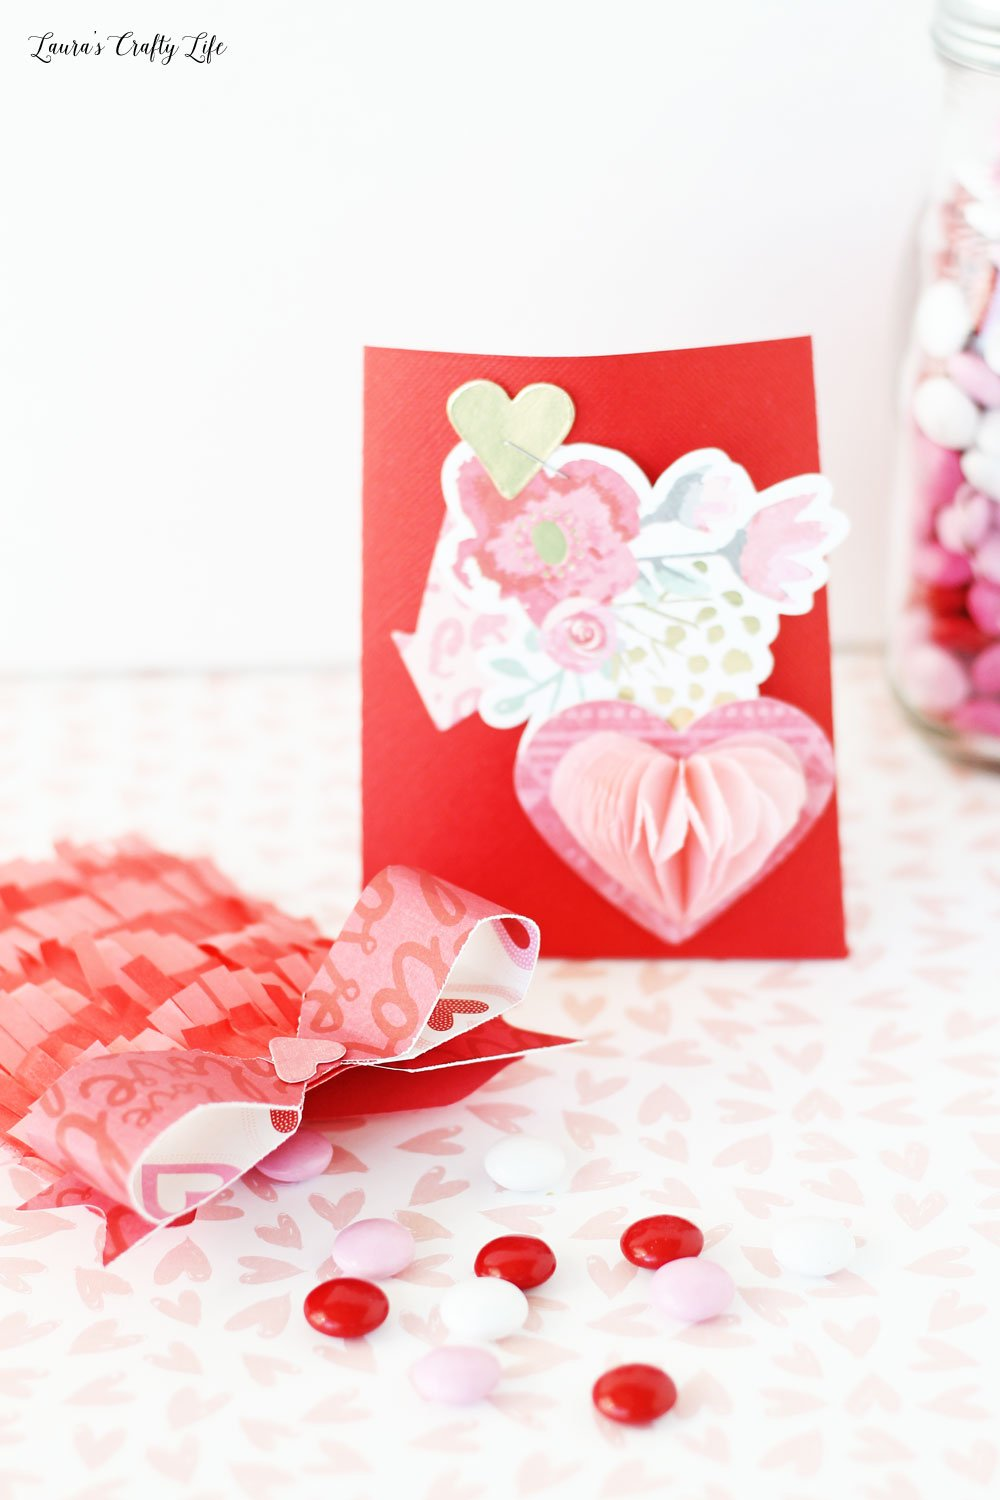 Beautiful Valentine's Day party favors made with the We R Memory Keepers 1-2-3 punch board